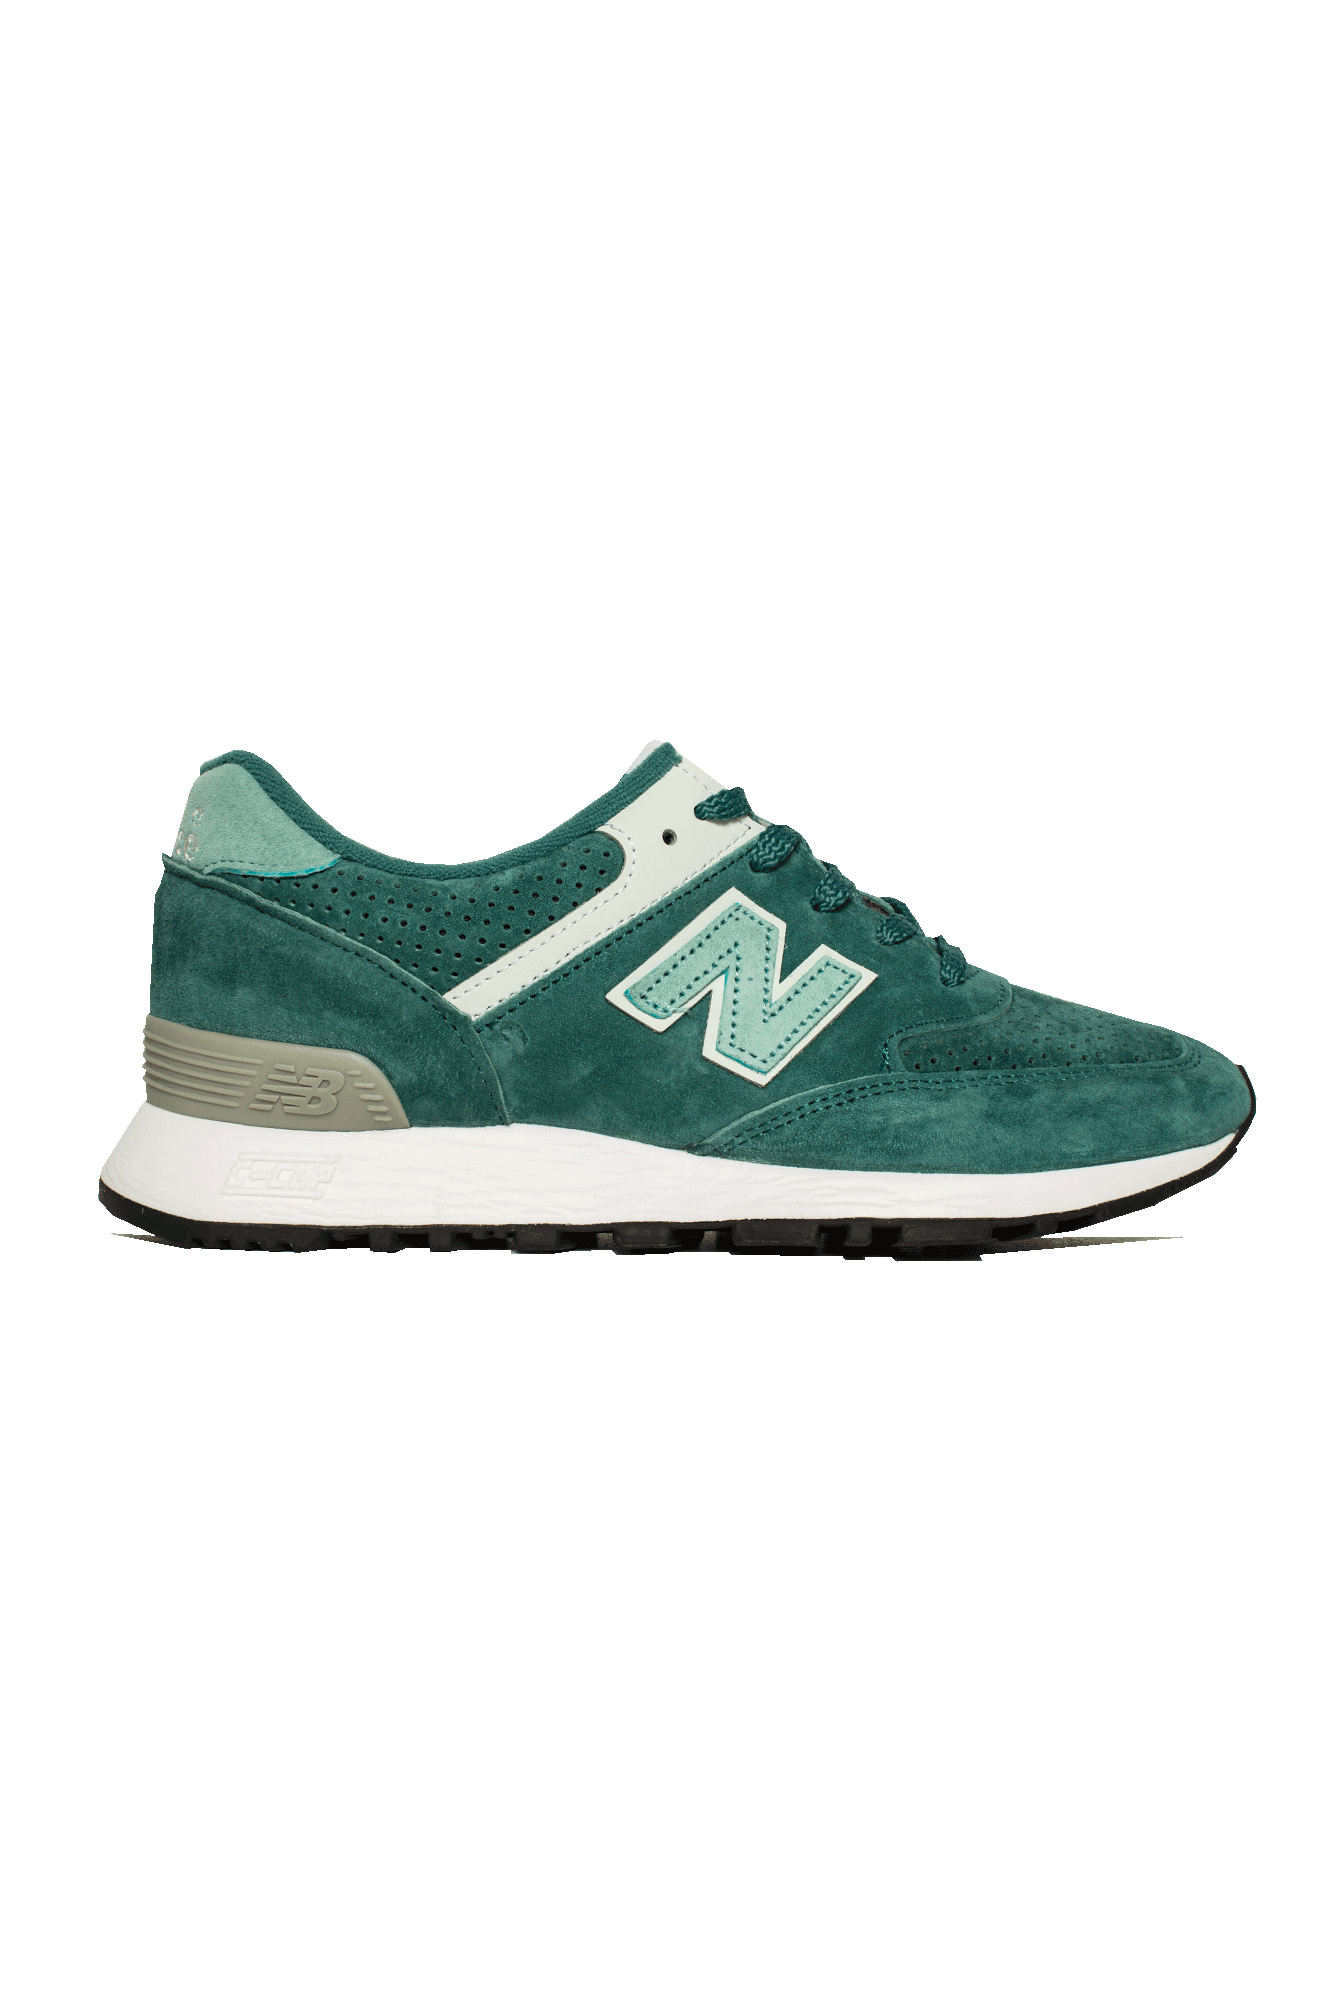 New Balance Sneakers 576 Verde W576PM#000#C0013#6,5 - One Block Down